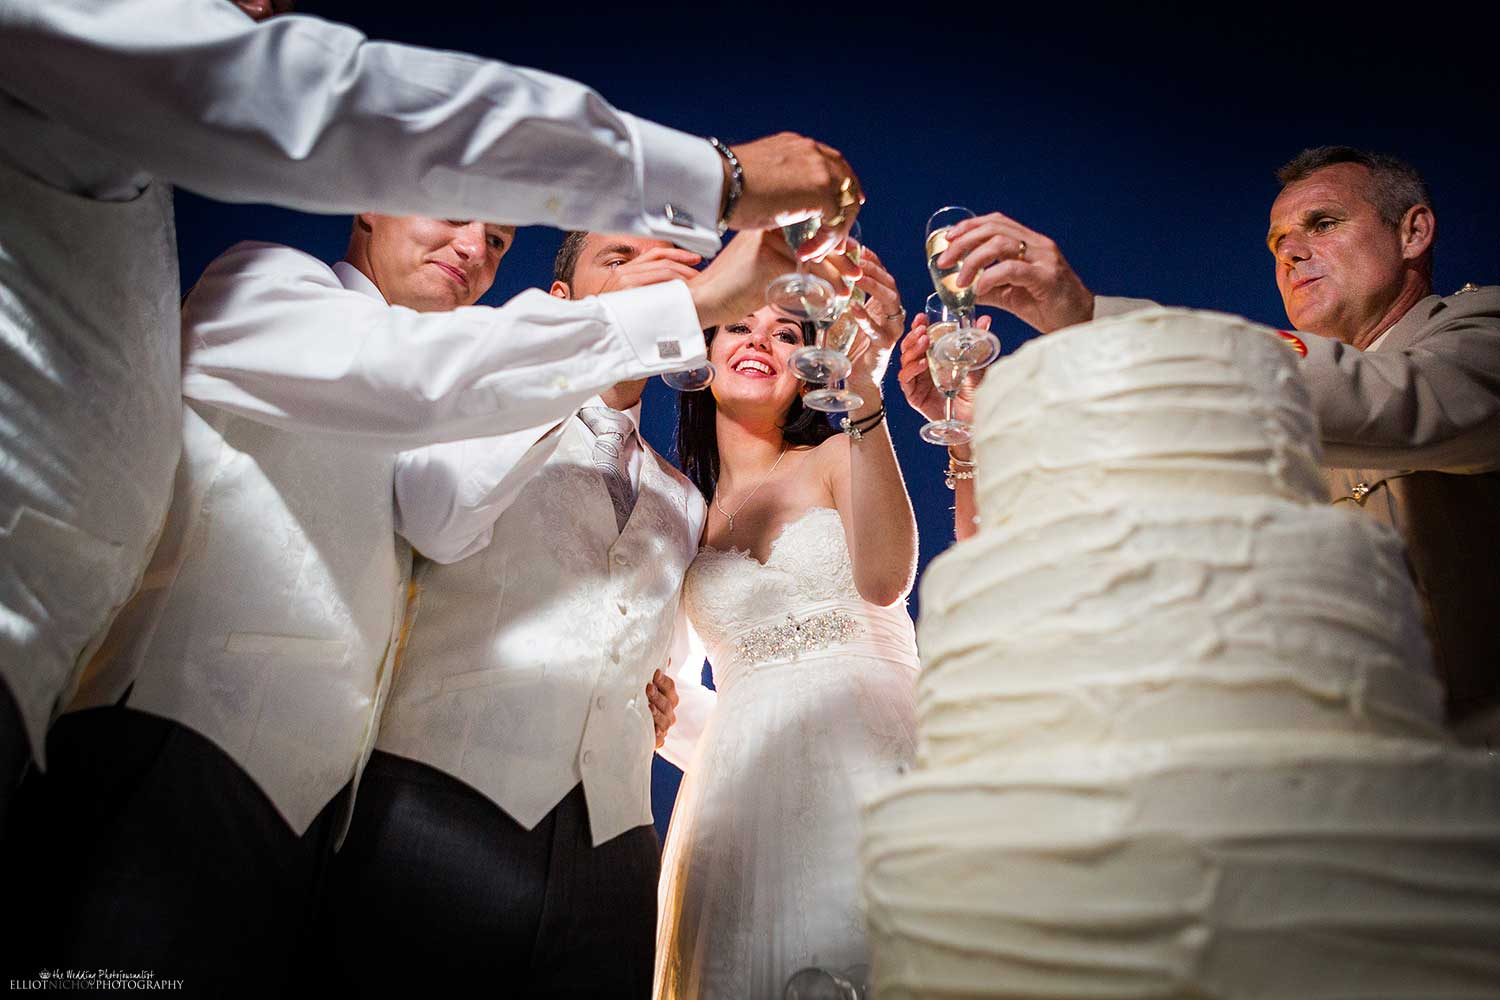 champagne-toast-bridal-party-wedding-cake-photography